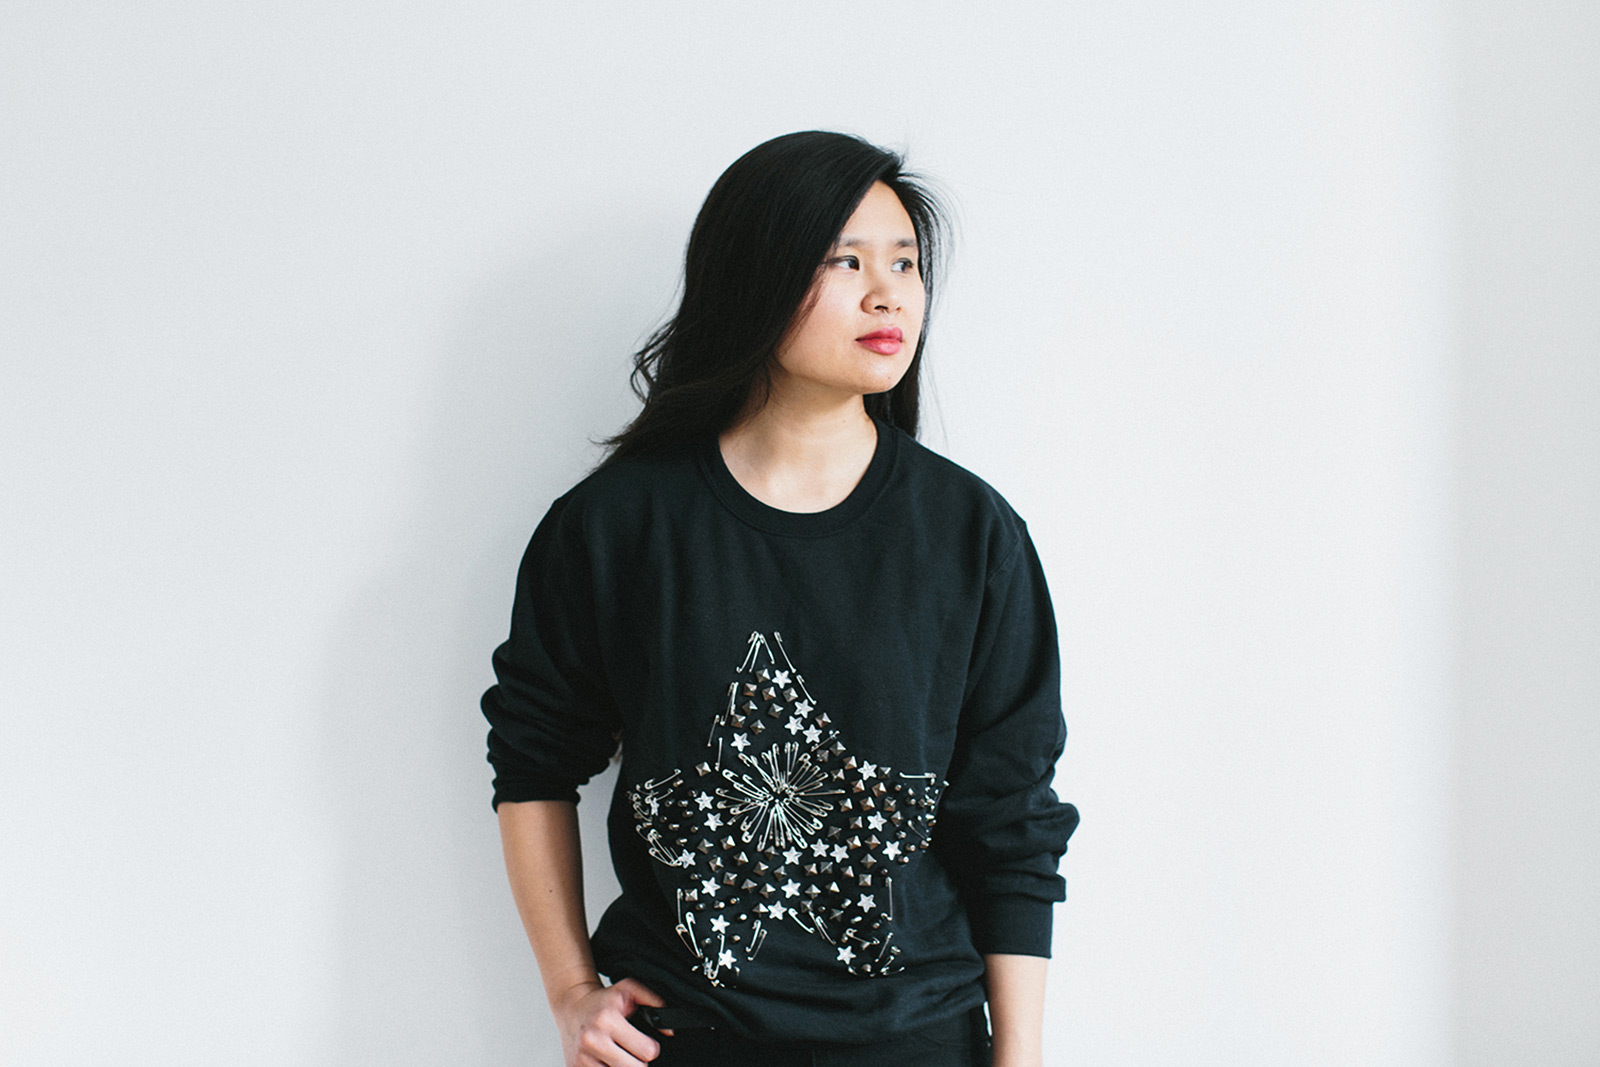 DIY Safety Pin Star Sweatshirt